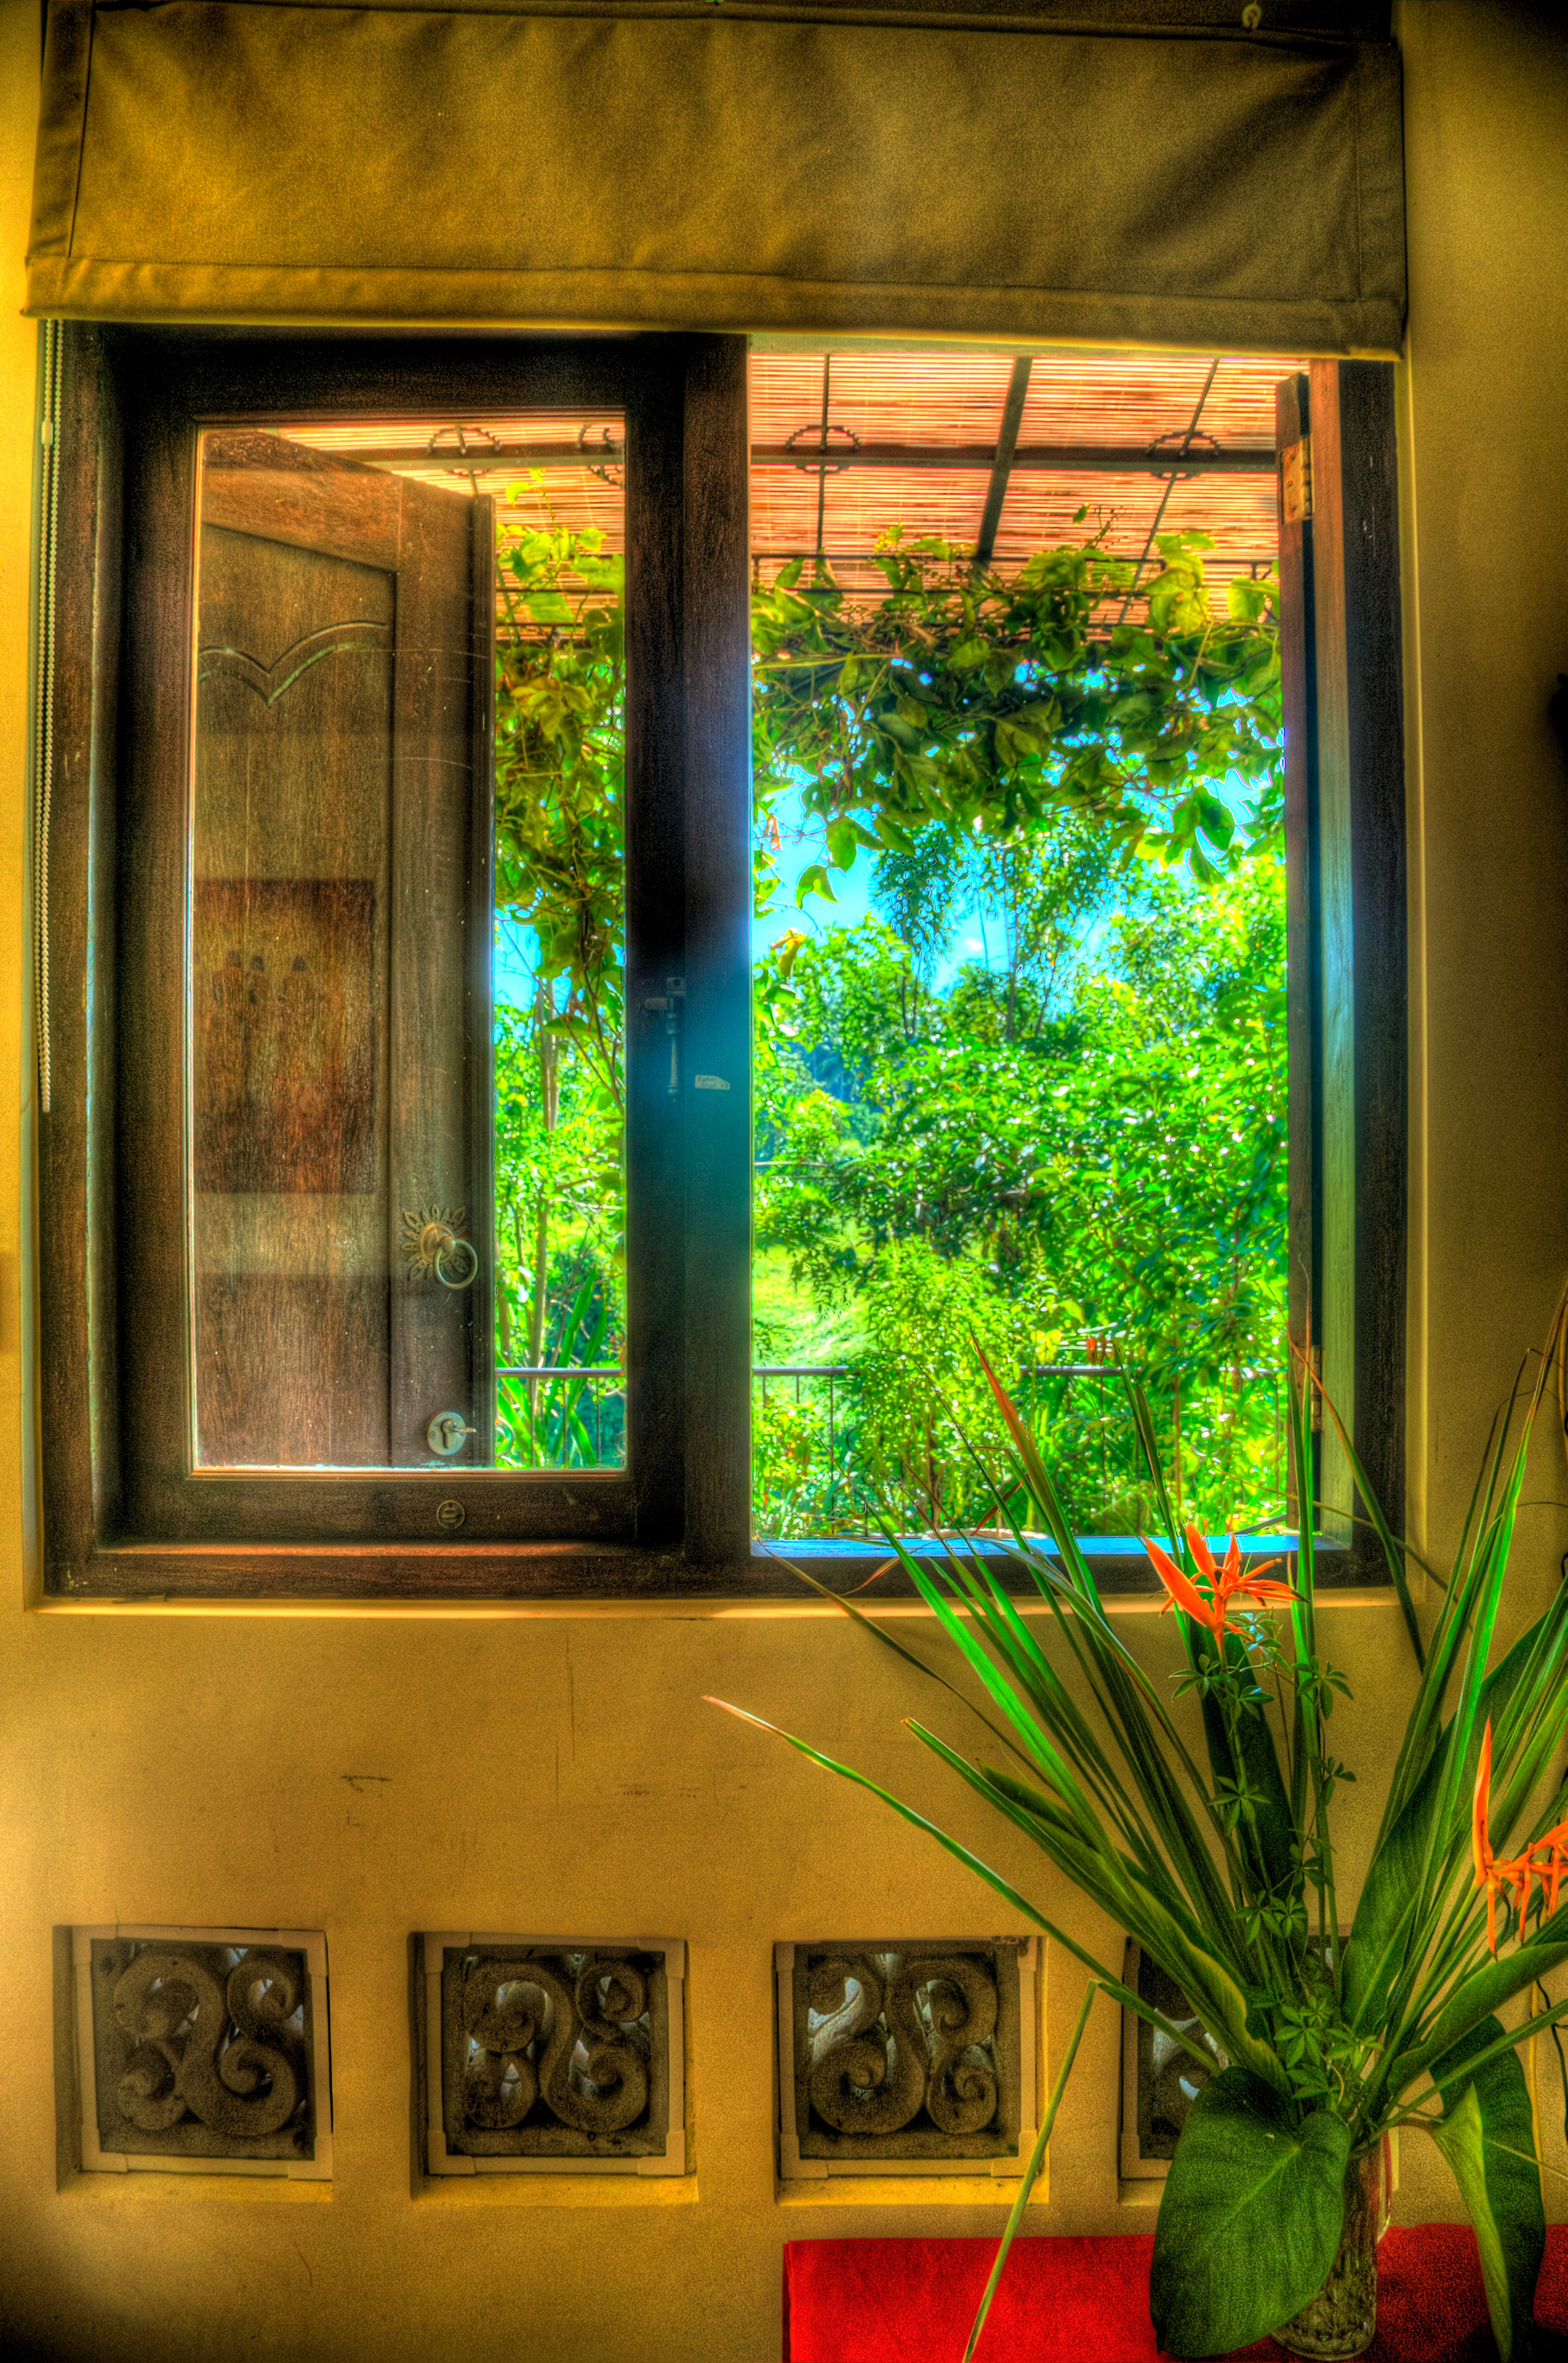 474A3041_2_3_tonemapped